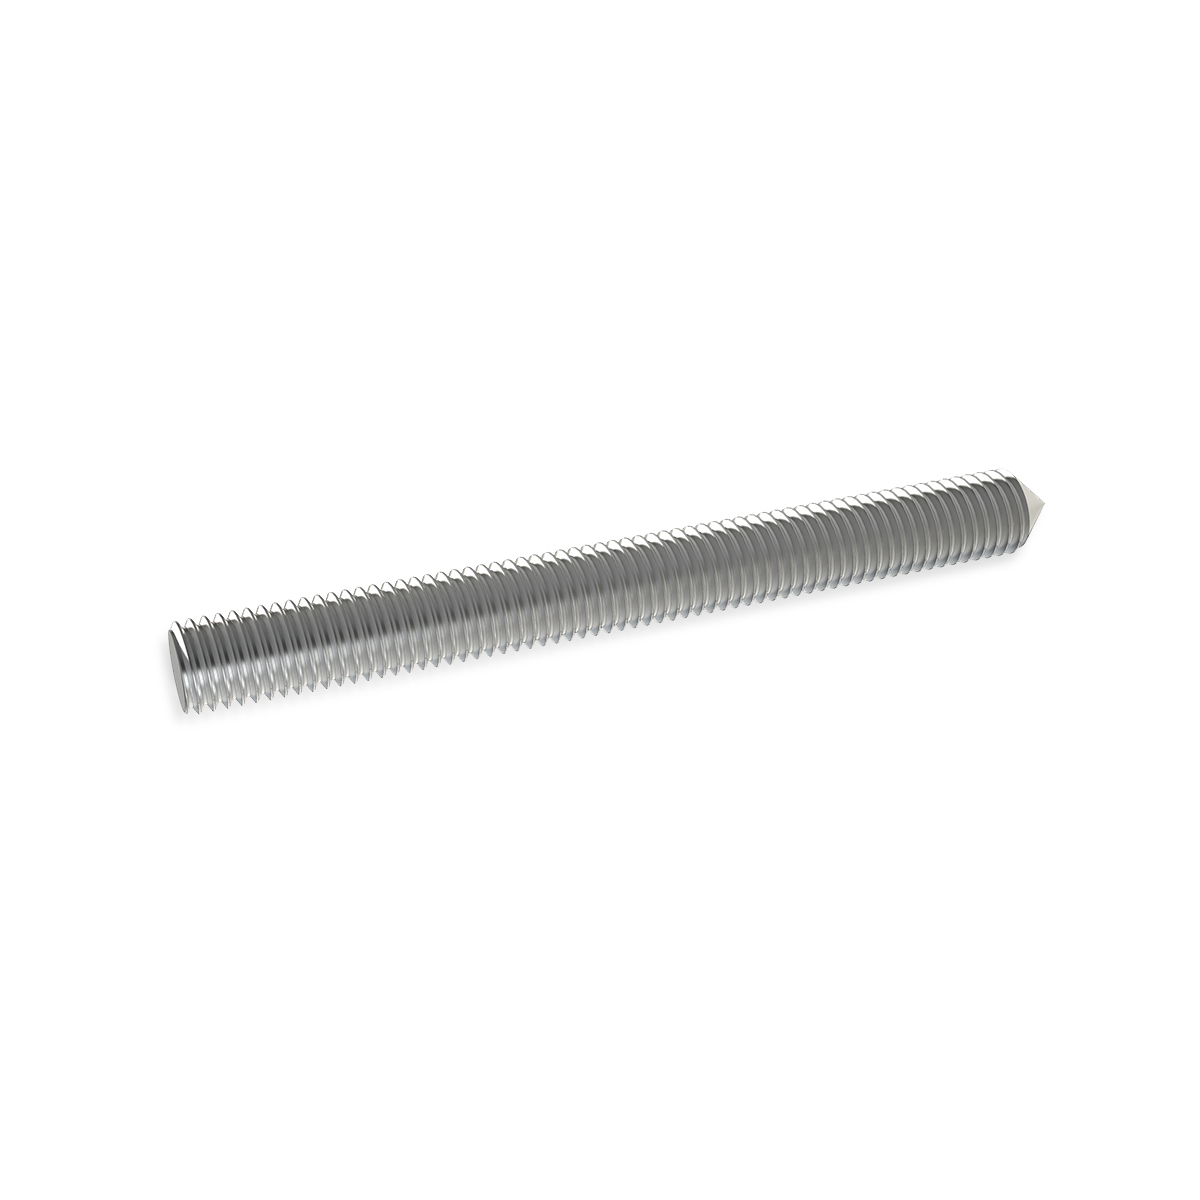 1/4'' Diameter X 4'' Long, Aluminum 1/4-20 Threaded Stud (1 End Flat - 1 End Conical)